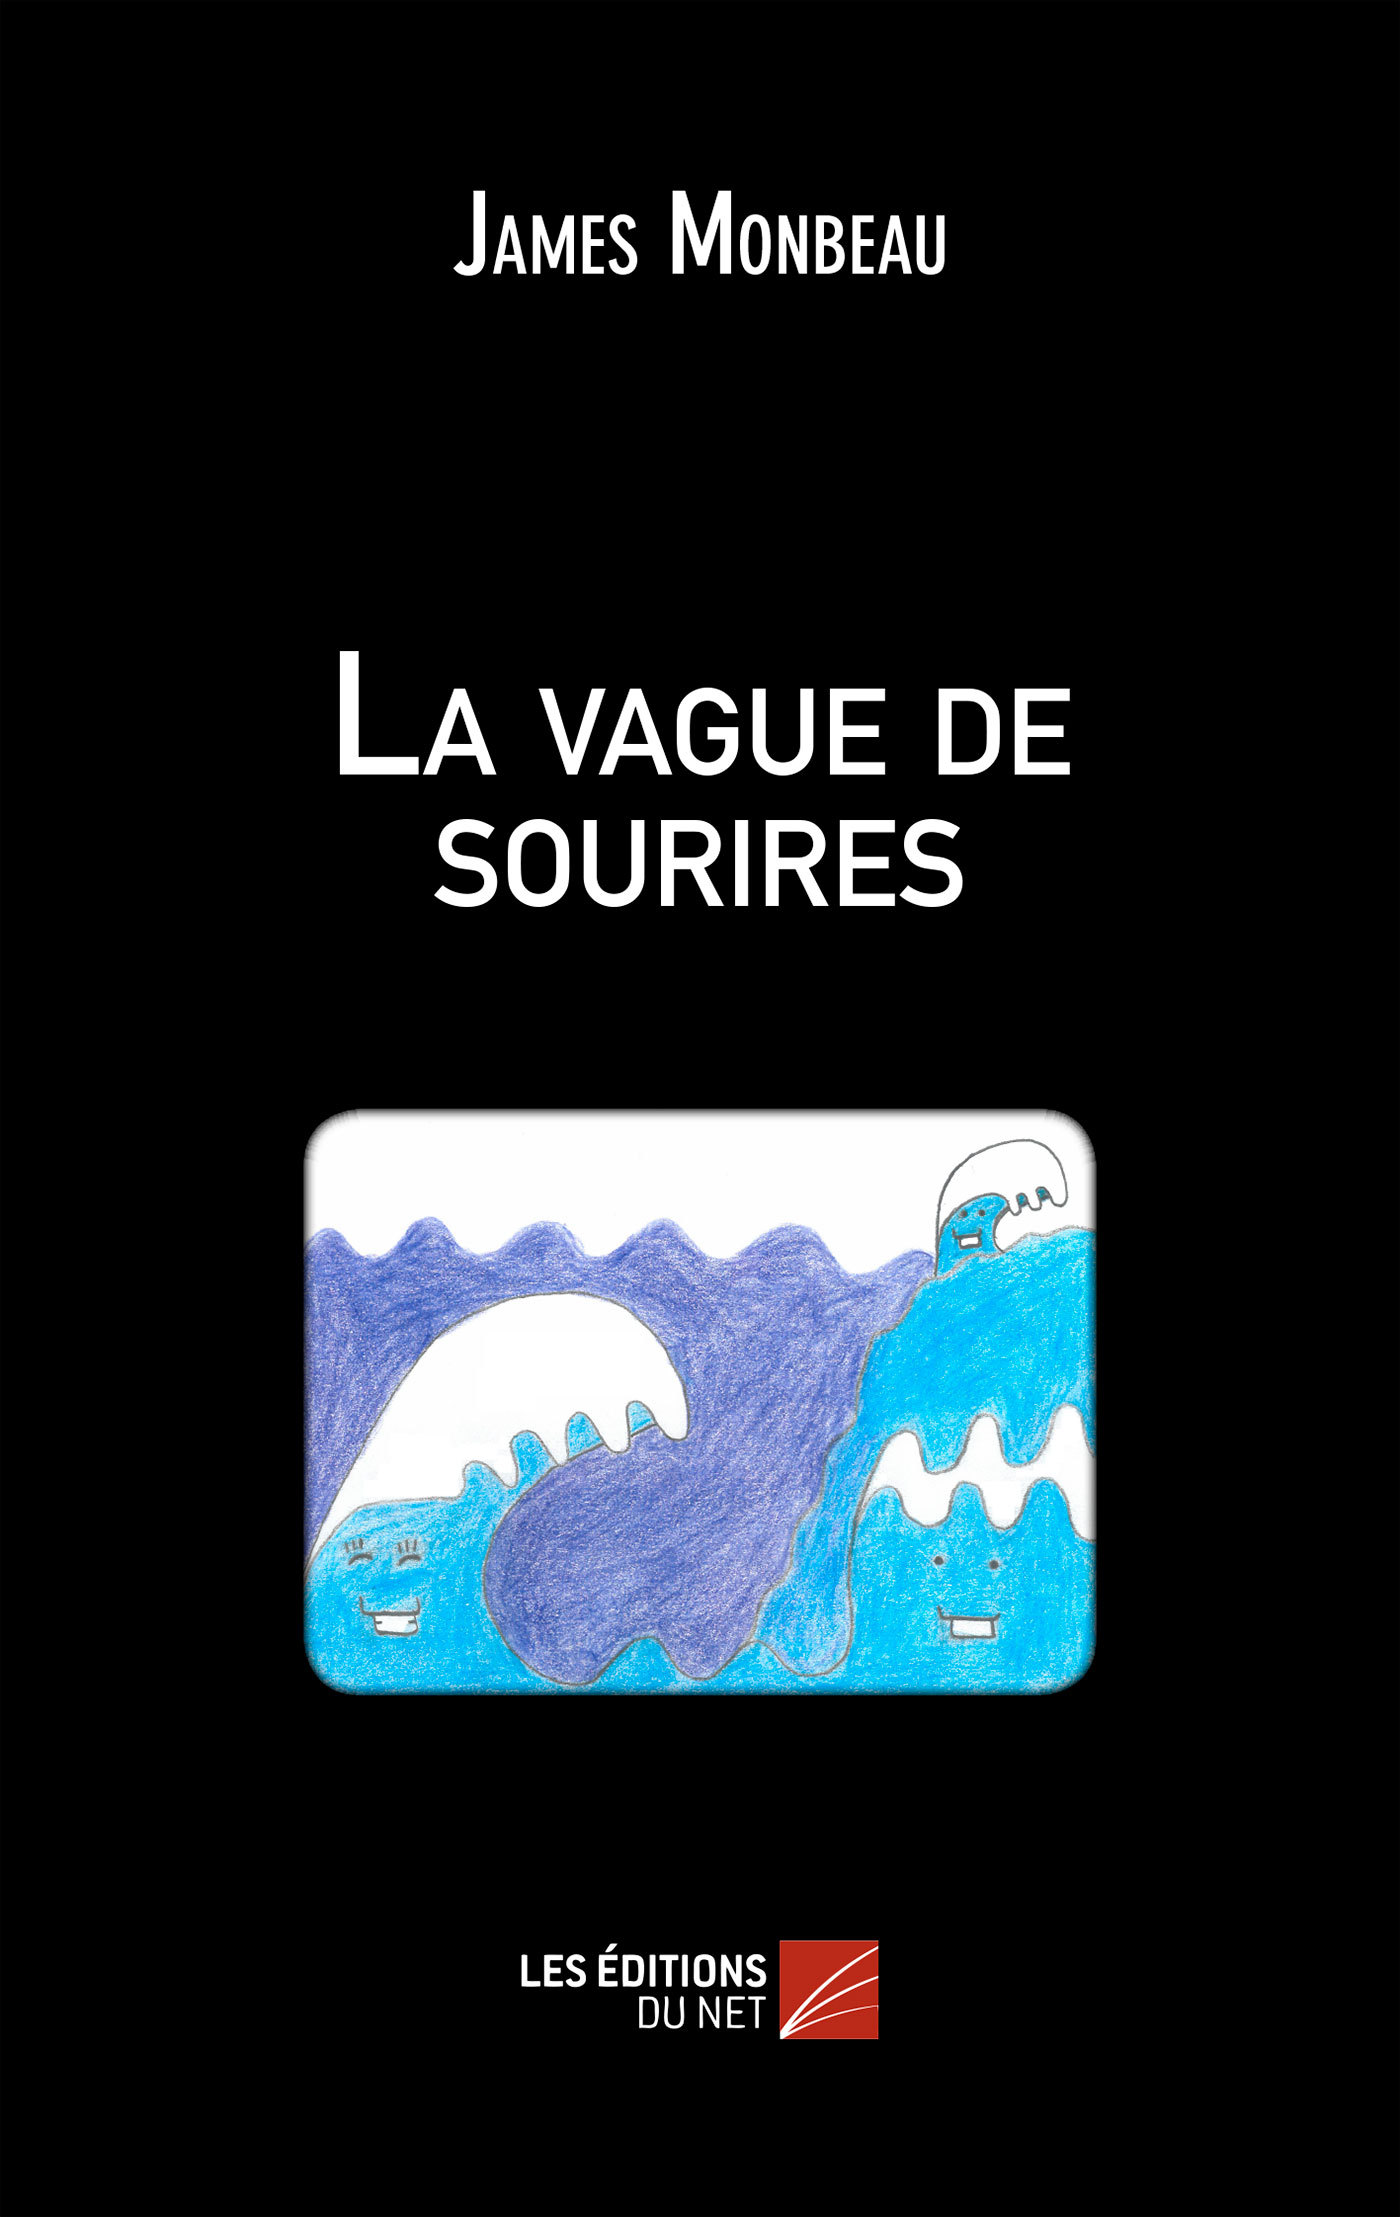 LA VAGUE DE SOURIRES